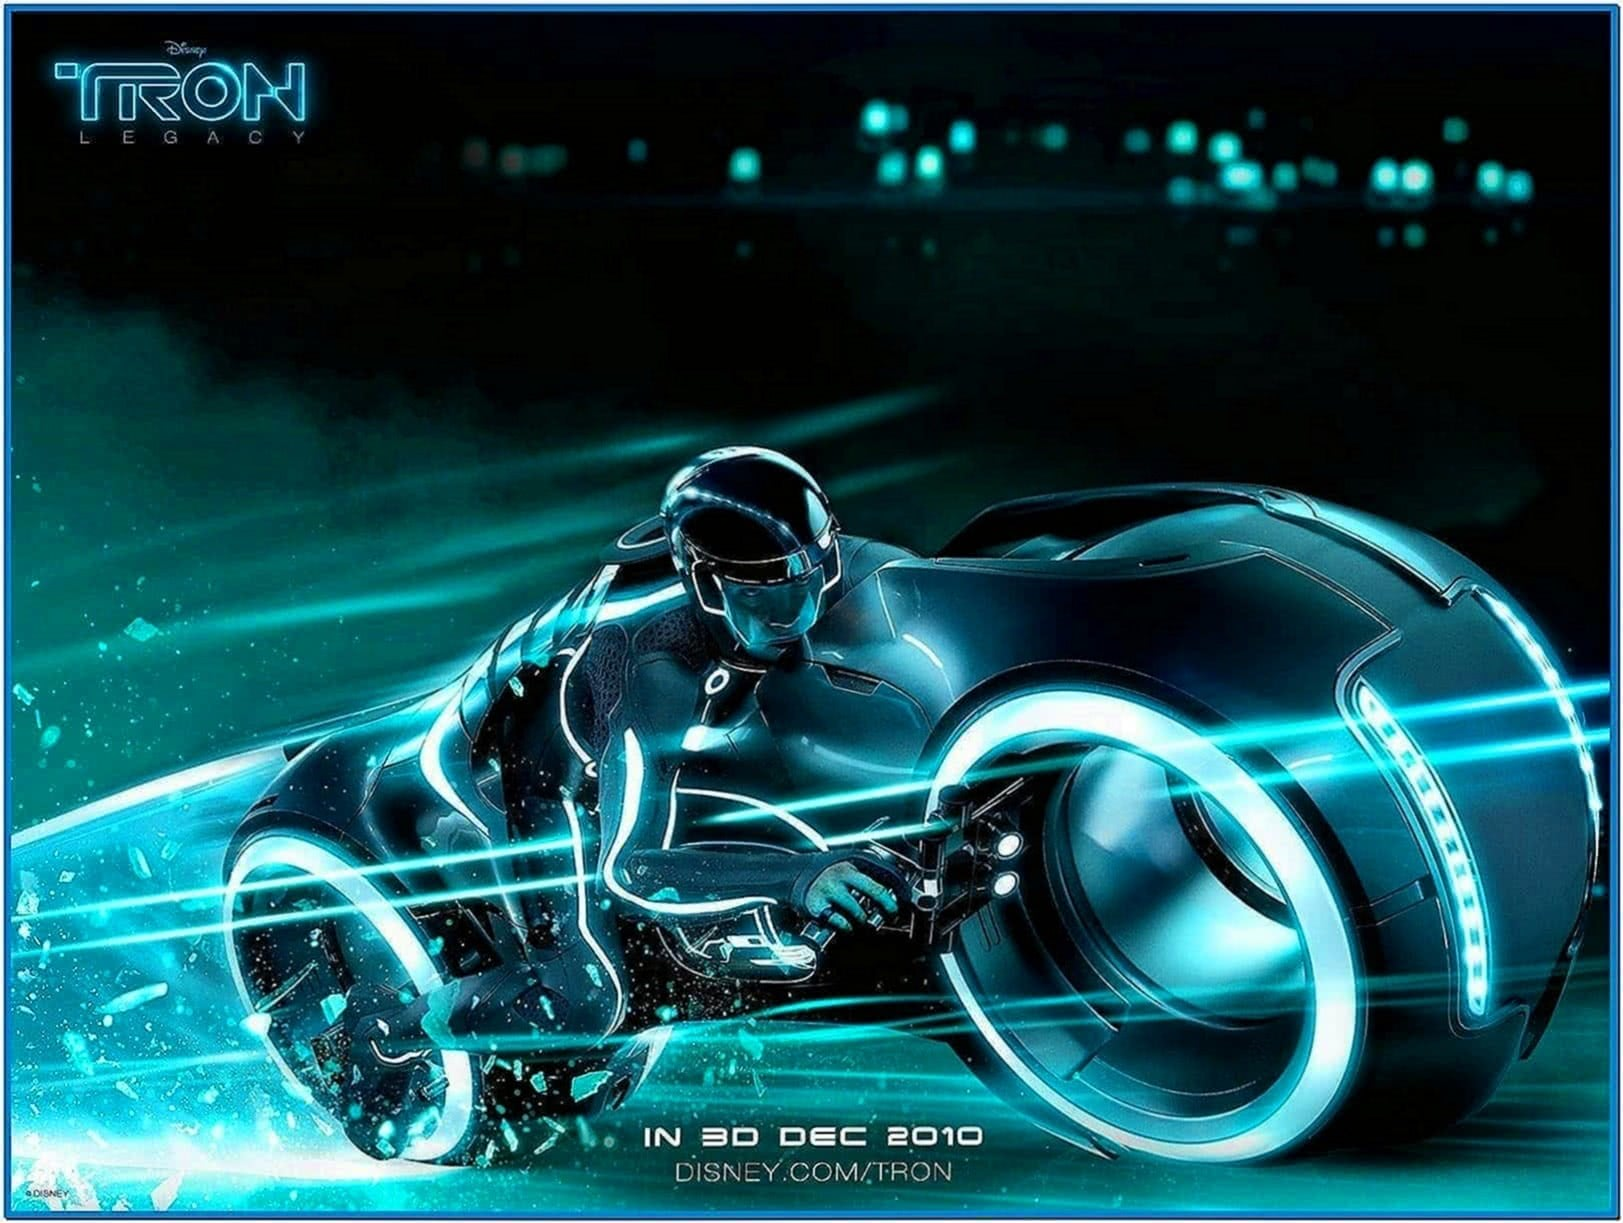 Tron Screensaver 3D